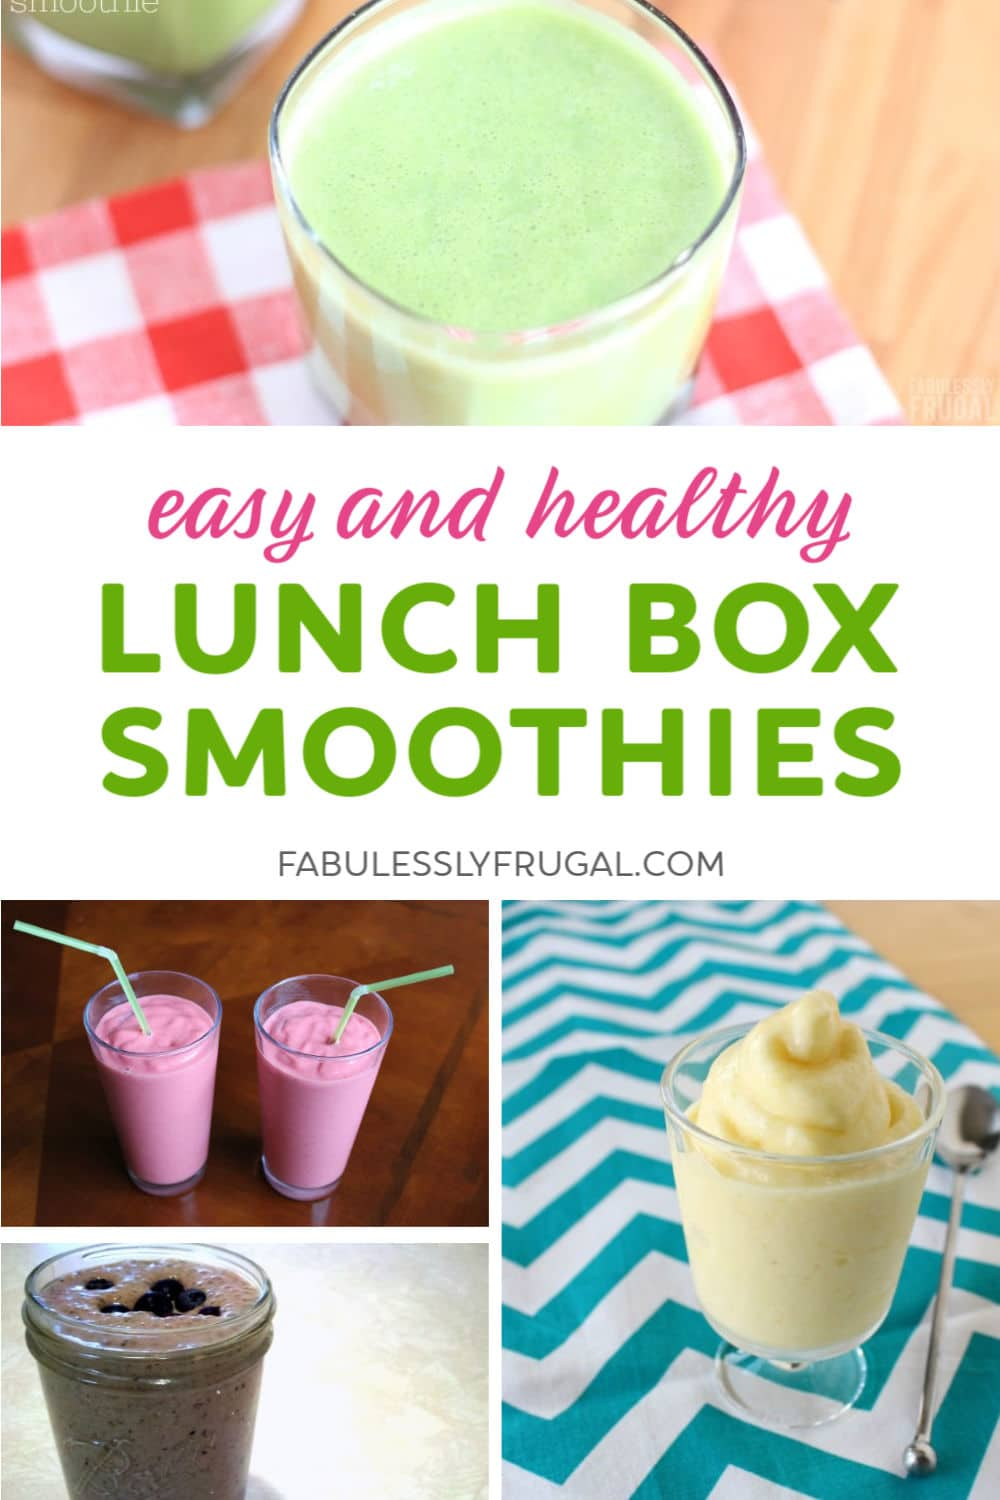 Smoothies for lunch